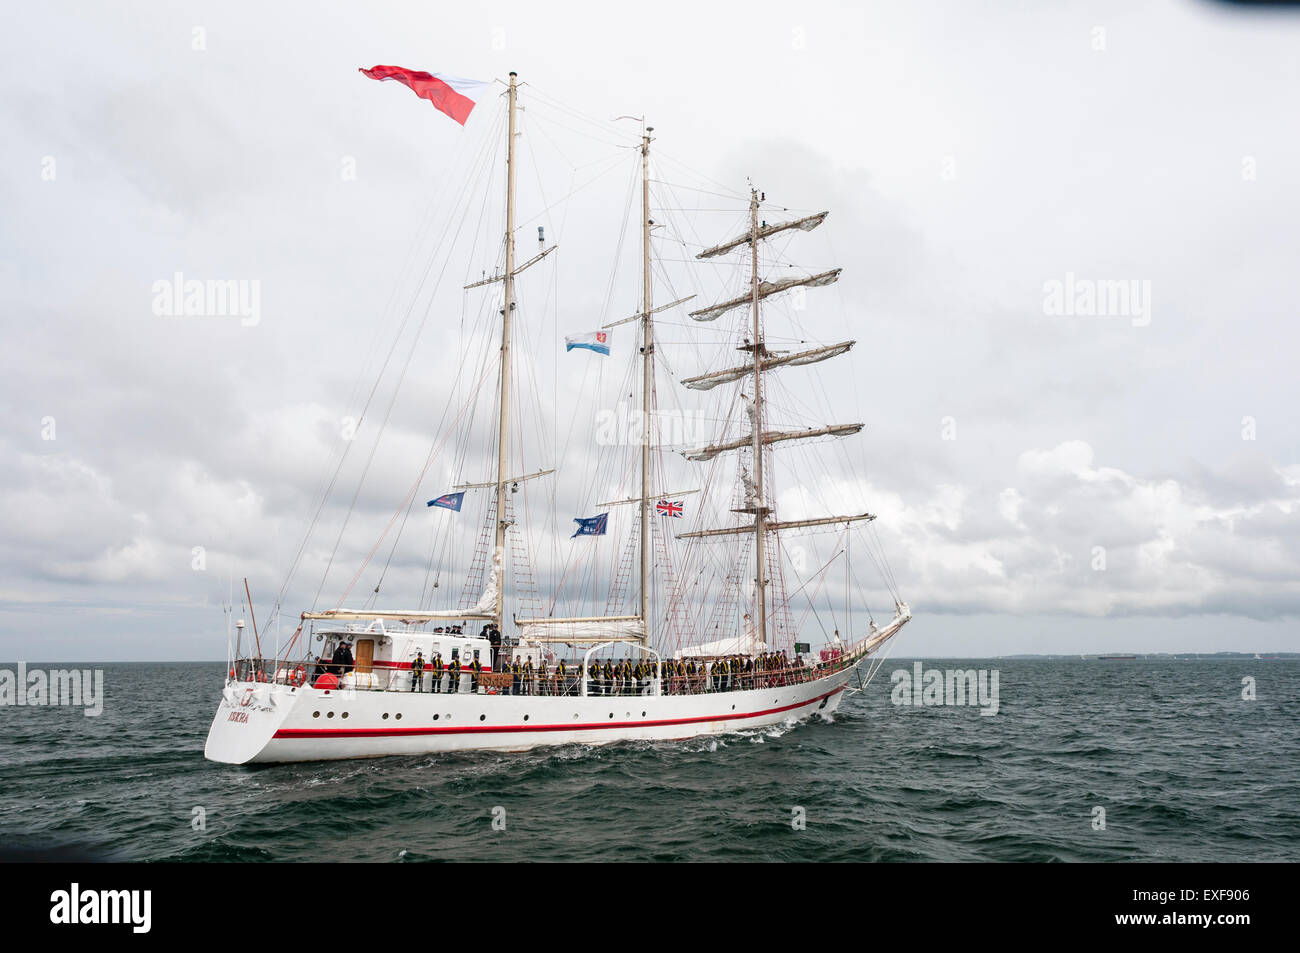 Class B tall ship, Iskra, leaves Belfast during the start of the 2015 Tall Ships race - Stock Image